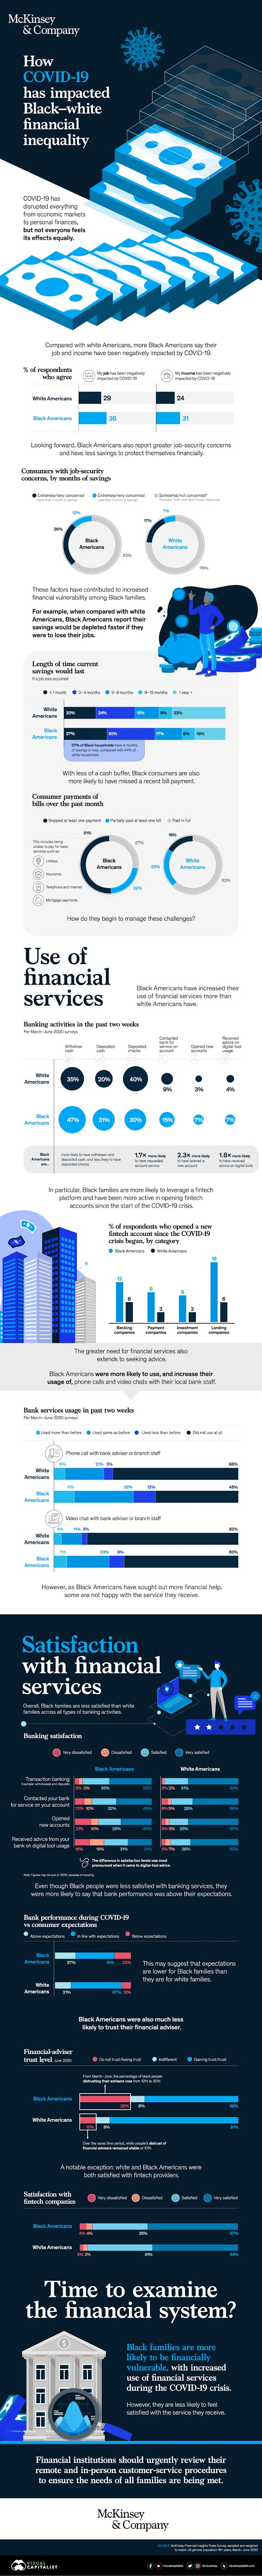 How COVID-19 Has Impacted Black-White Financial Inequality #infographic